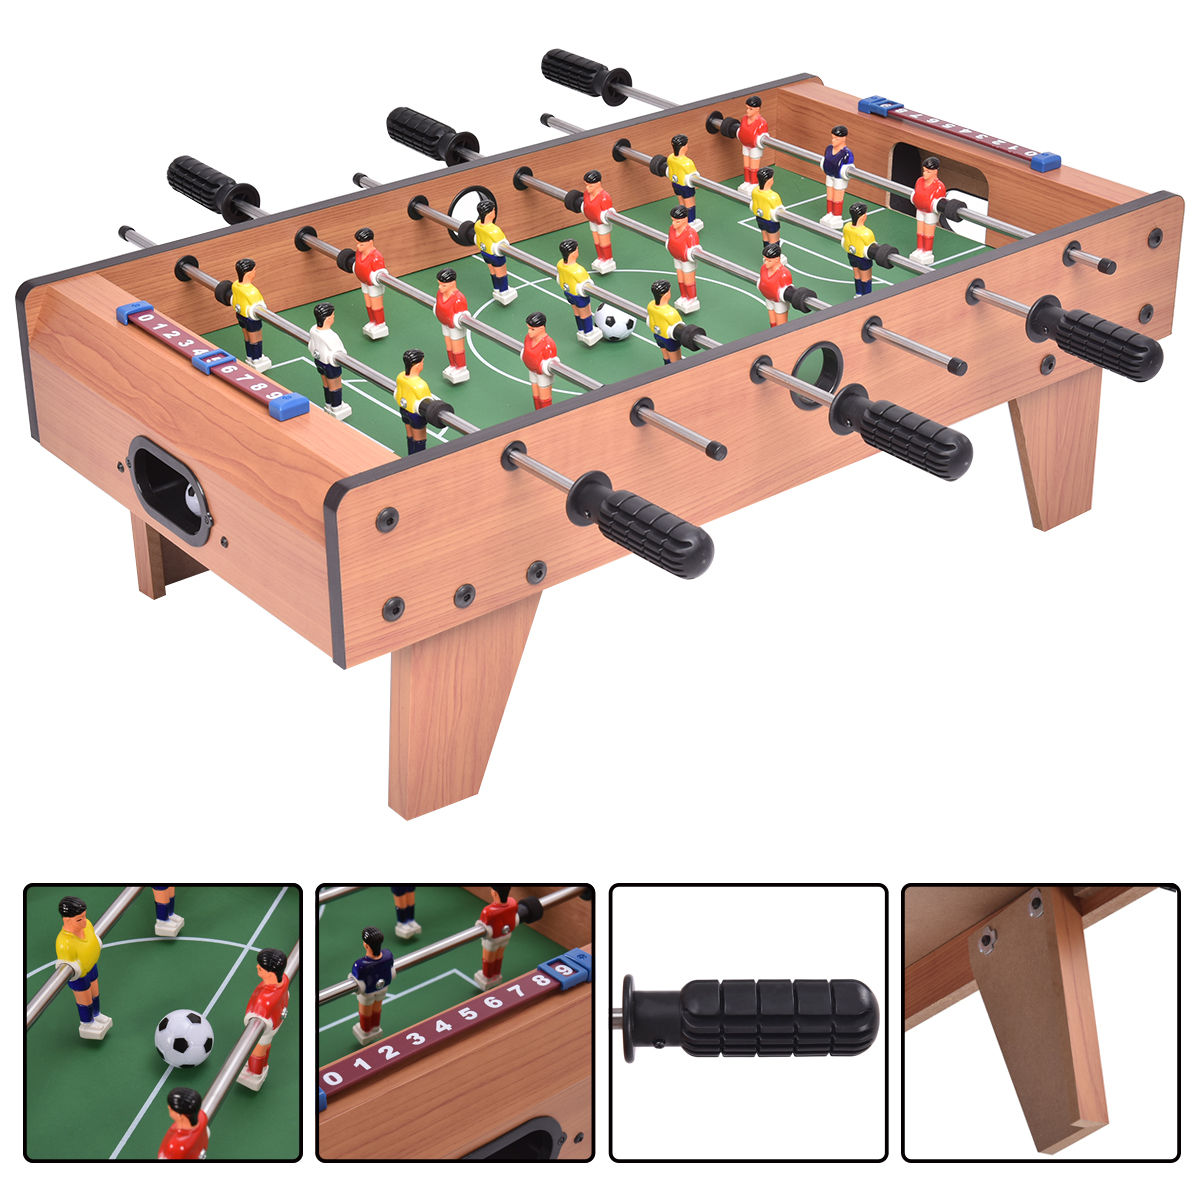 Costway 27u0027u0027 Foosball Table Competition Game Room Soccer Football Sports  Indoor W/ Legs. Product Variants Selector. Price